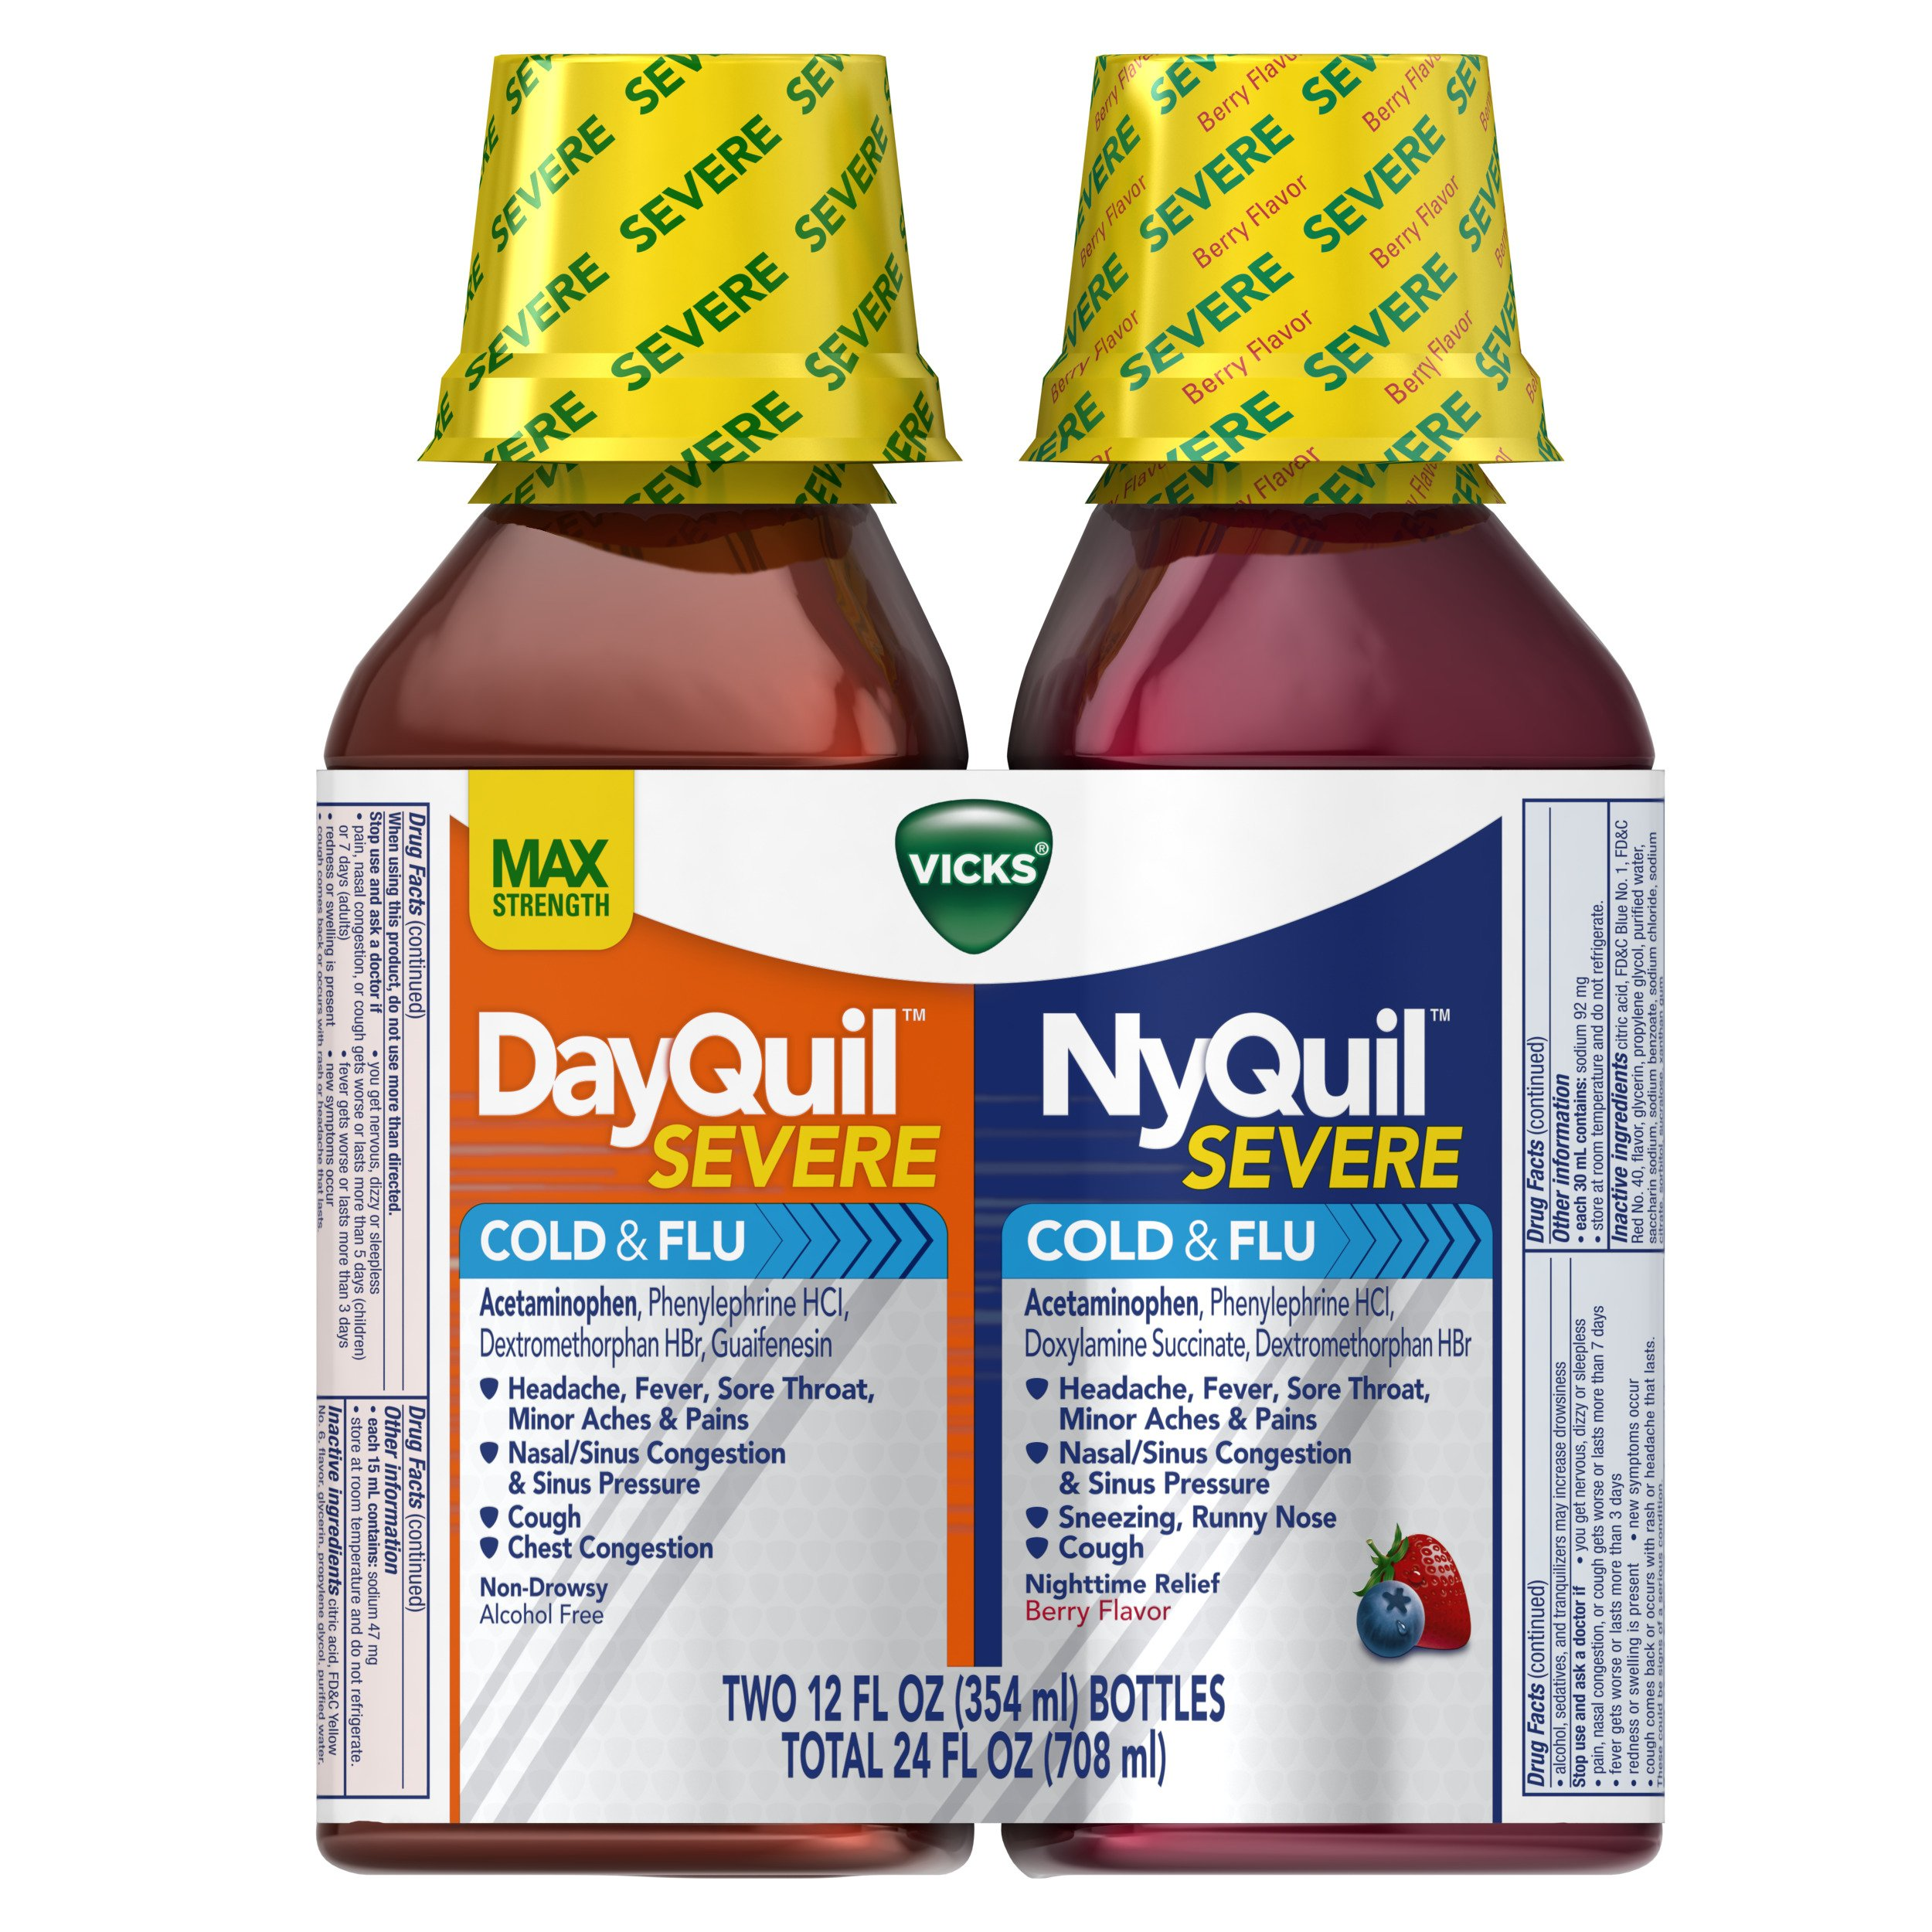 Vicks NyQuil and DayQuil SEVERE Cough, Cold & Flu Relief Liquid, 2x12 Fl Oz Combo, Relieves Sore Throat, Fever, and Congestion, Day or Night by Vicks